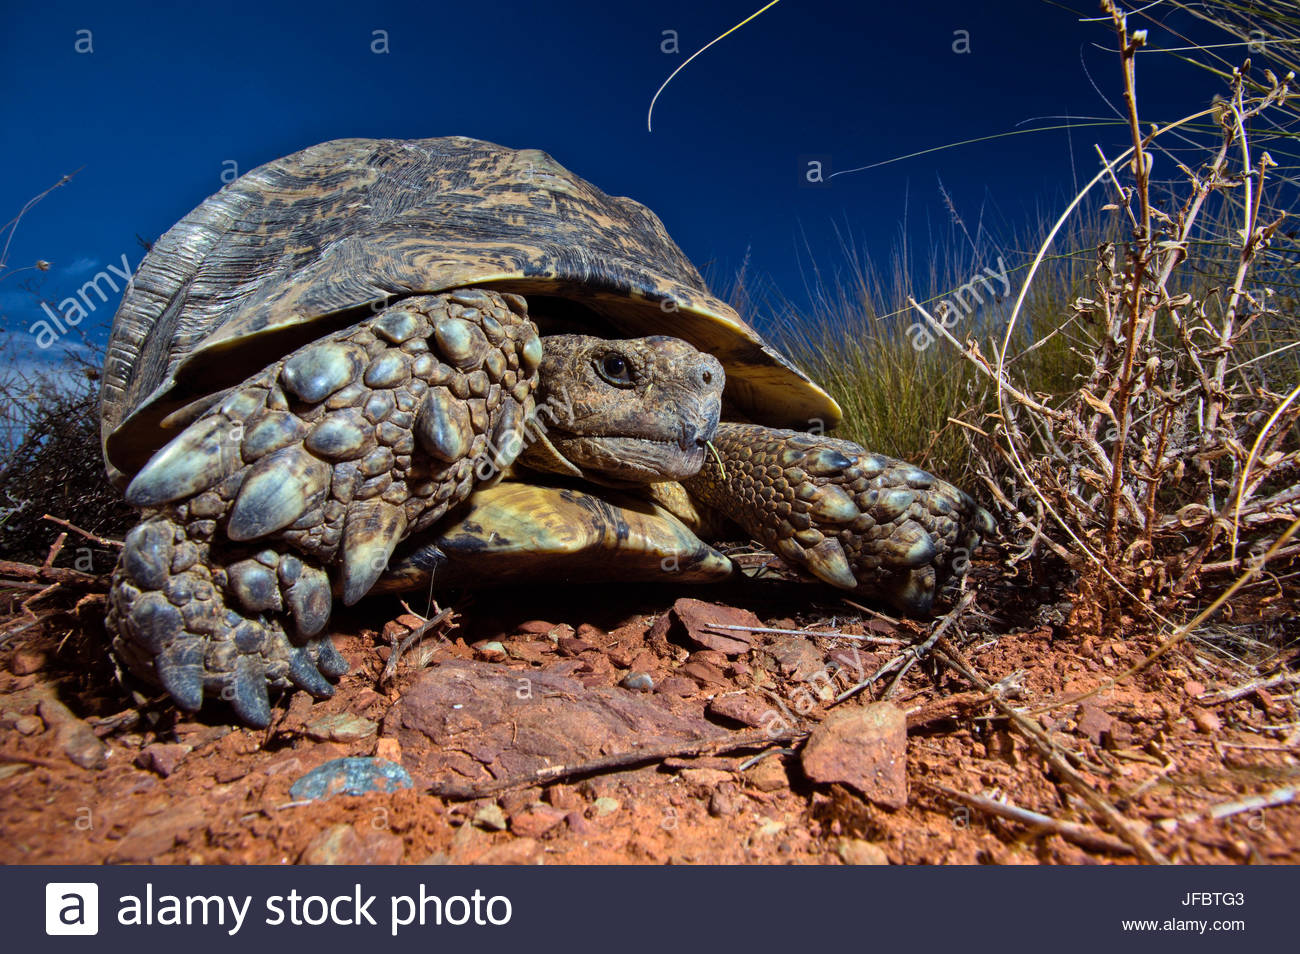 A leopard tortoise, Stigmochelys pardalis, on the side of a road. - Stock Image